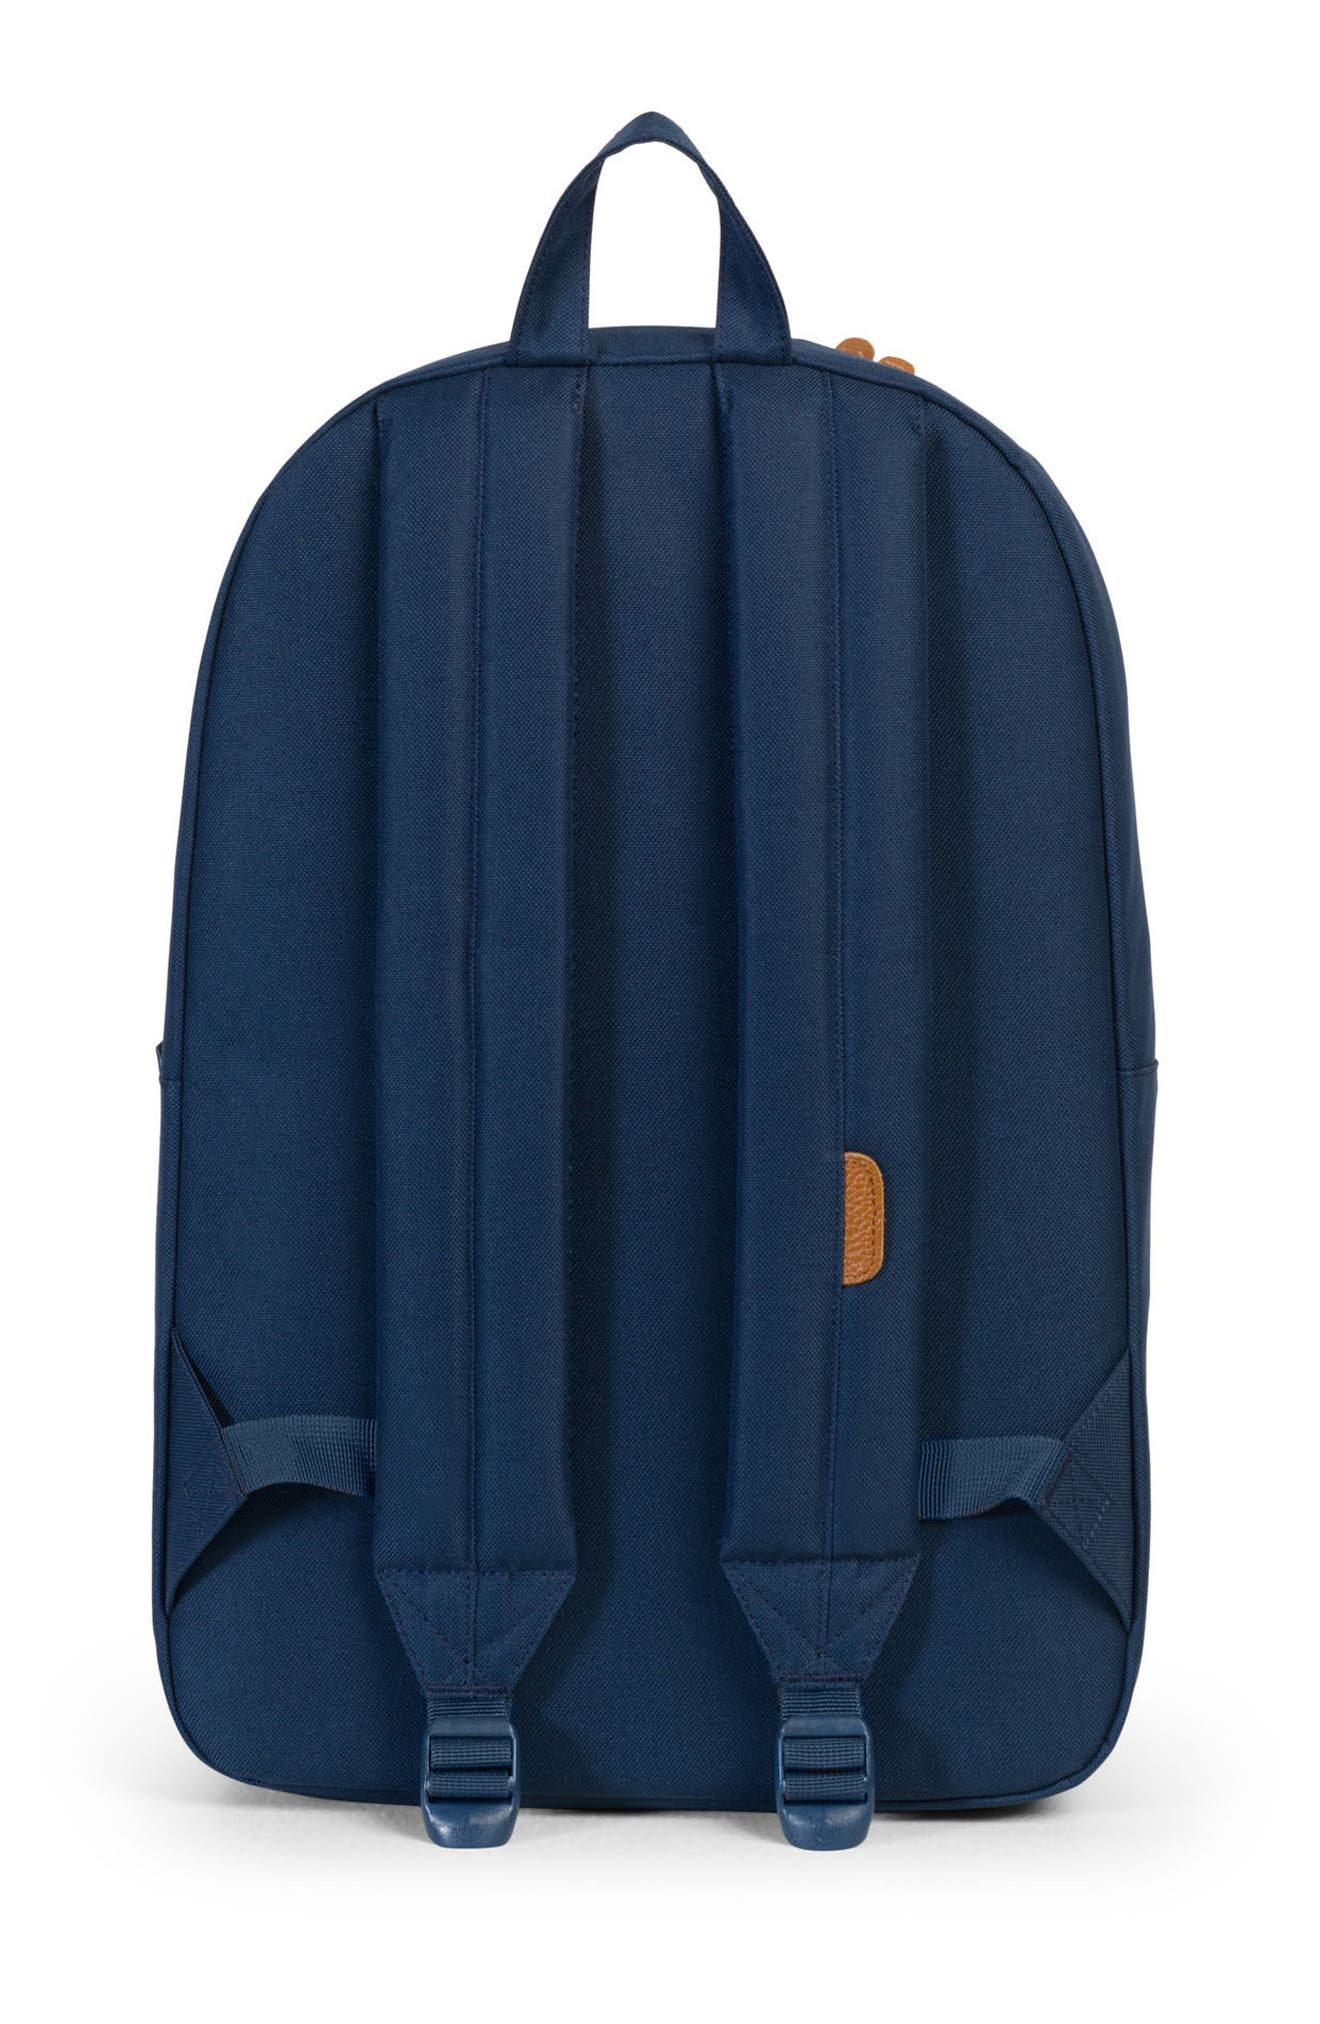 Heritage Seattle Mariners Backpack,                             Alternate thumbnail 2, color,                             477